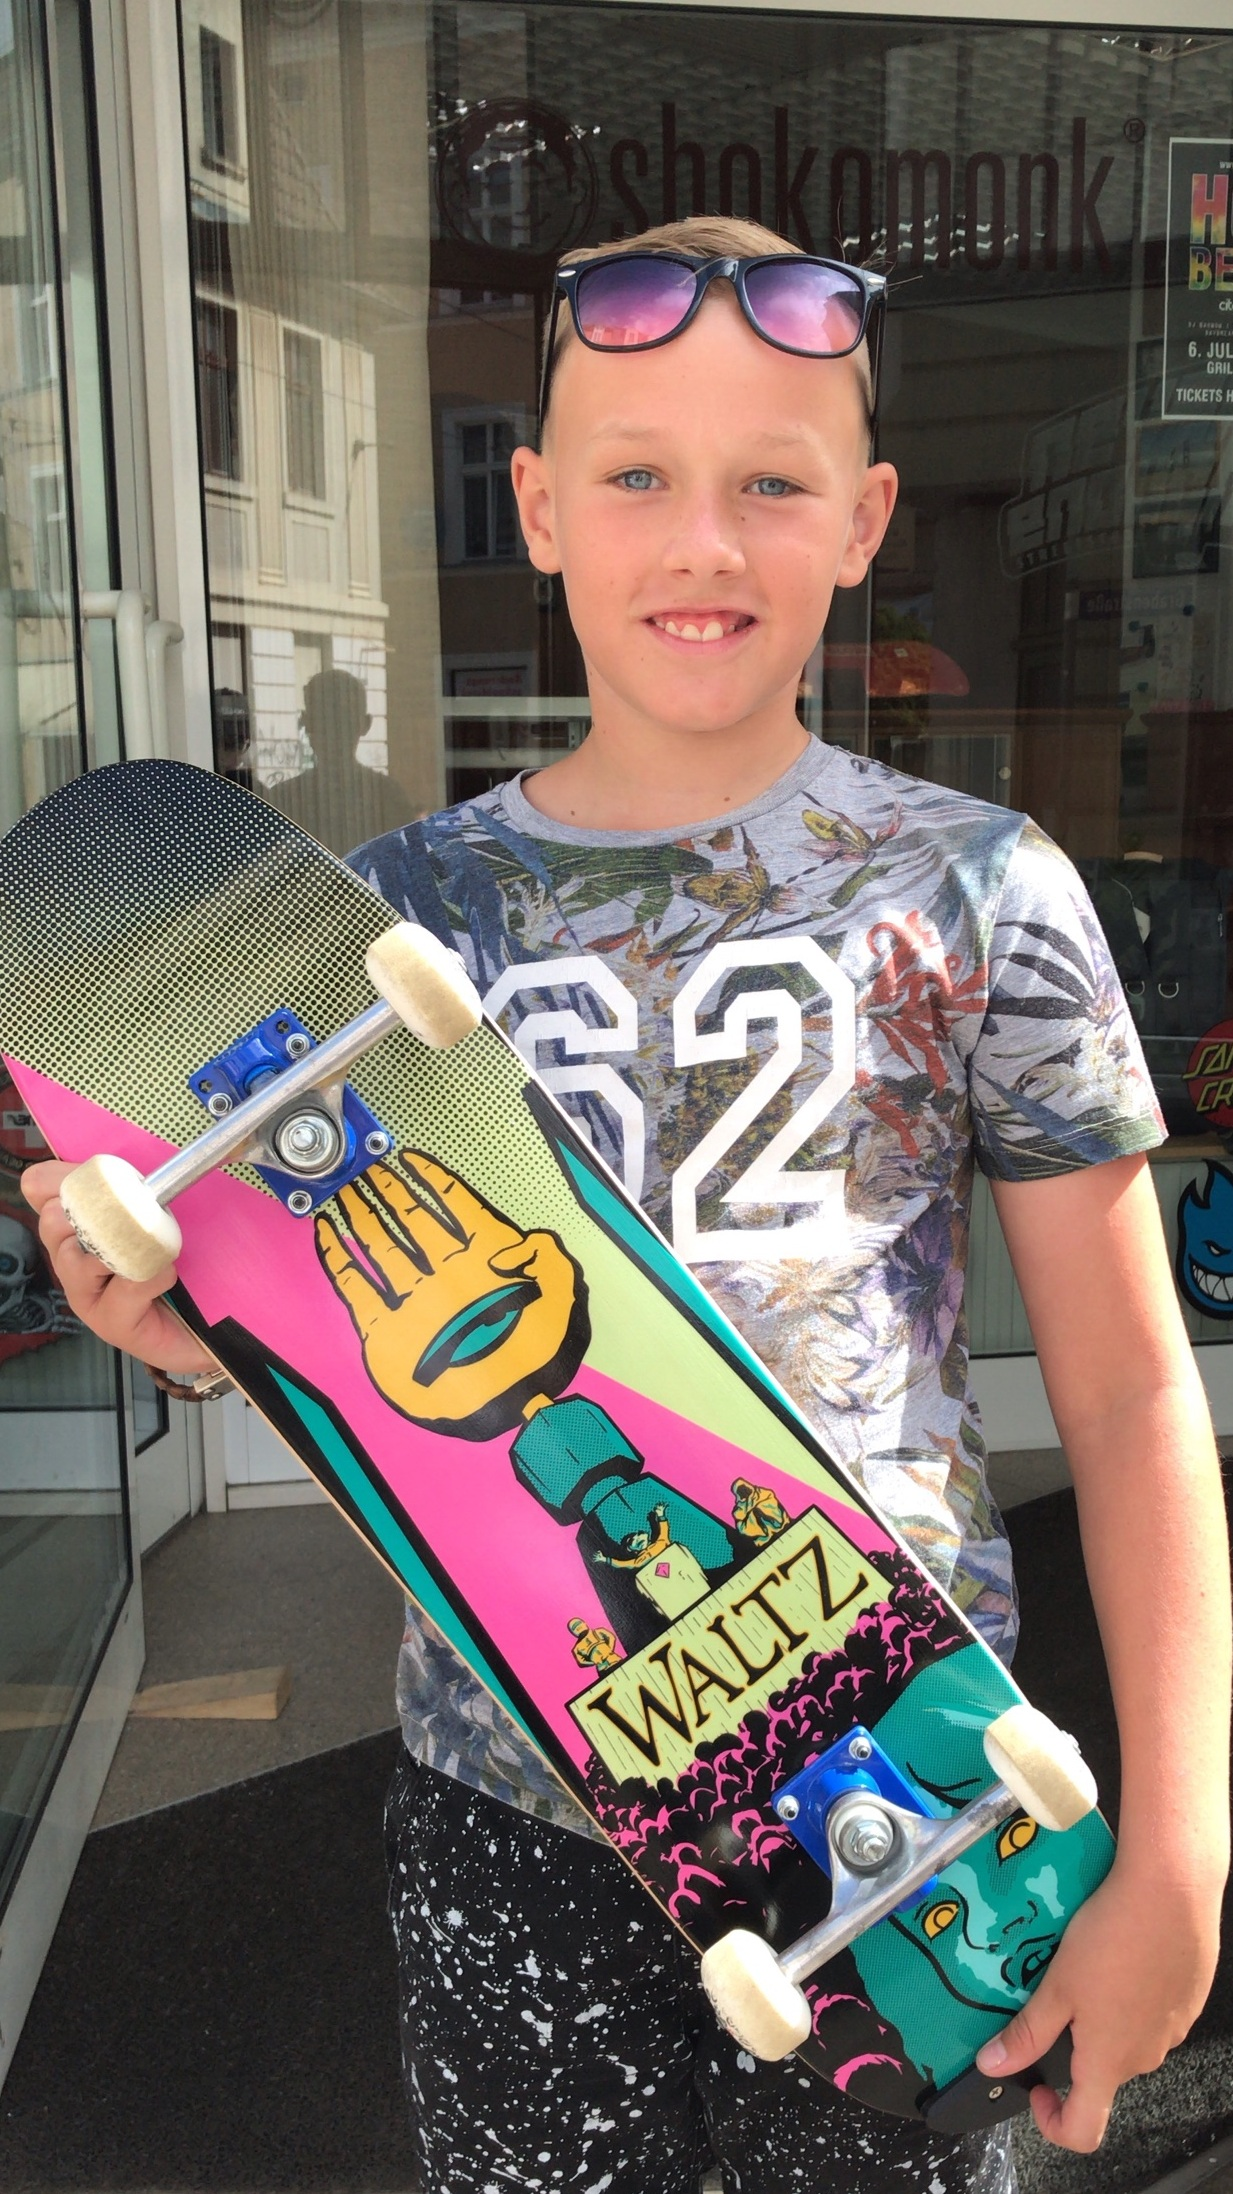 LIon takes home his new Monument freestyle Board, available at Never enough streetstore.